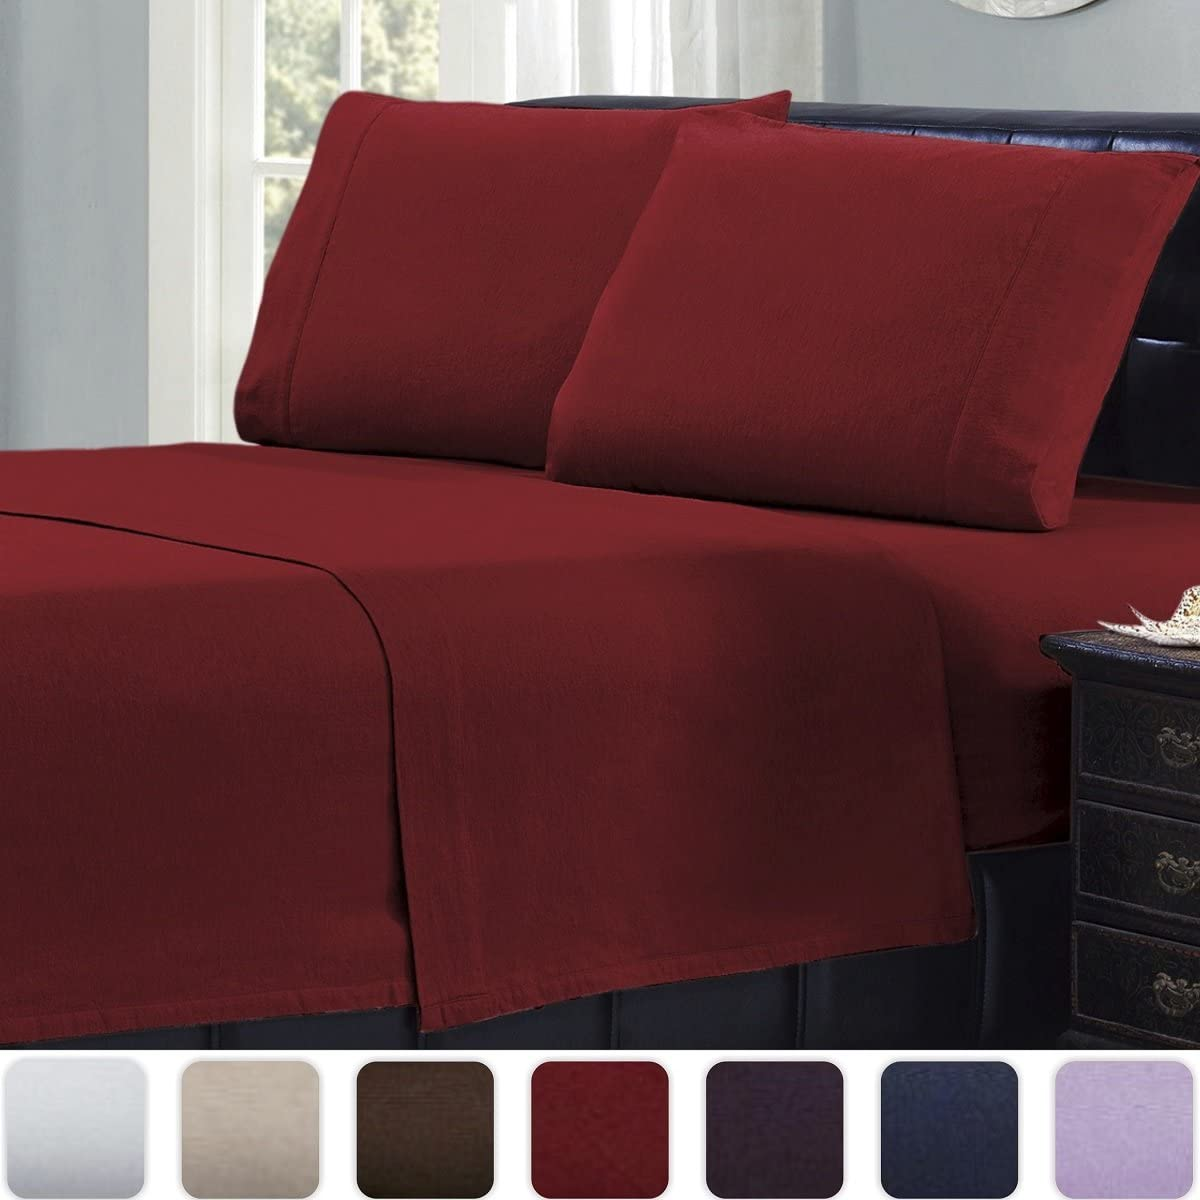 All Around Elastic Warm Lightweight Bed Sheets Twin, Burgundy Soft Mellanni Twin Flannel Sheet Set Deep Pockets 3 pc Luxury 100/% Cotton Breathable Bedding Cozy